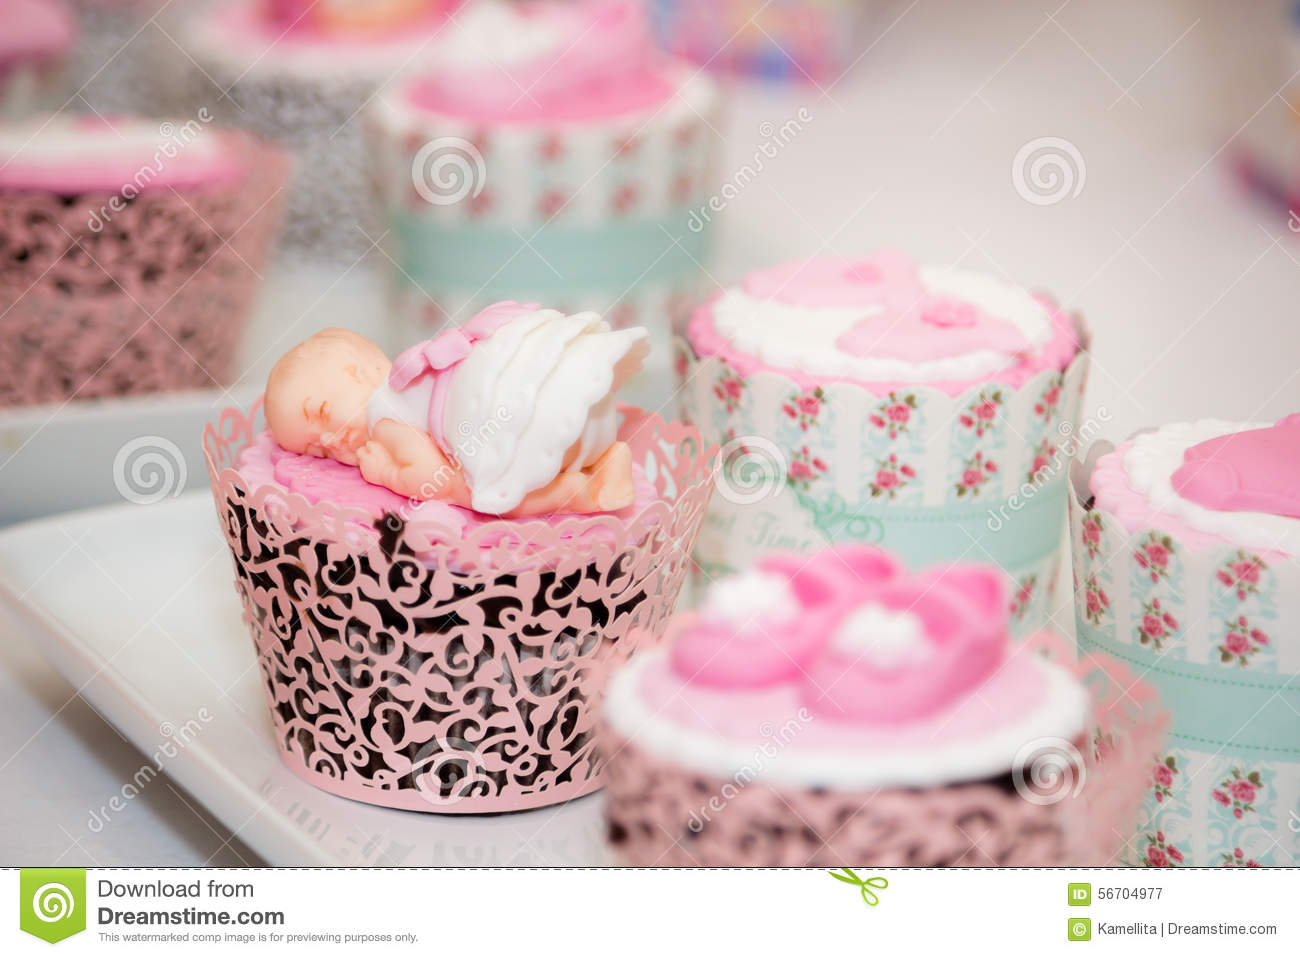 Cupcakes For A Baby Shower Royalty Free Stock Photo